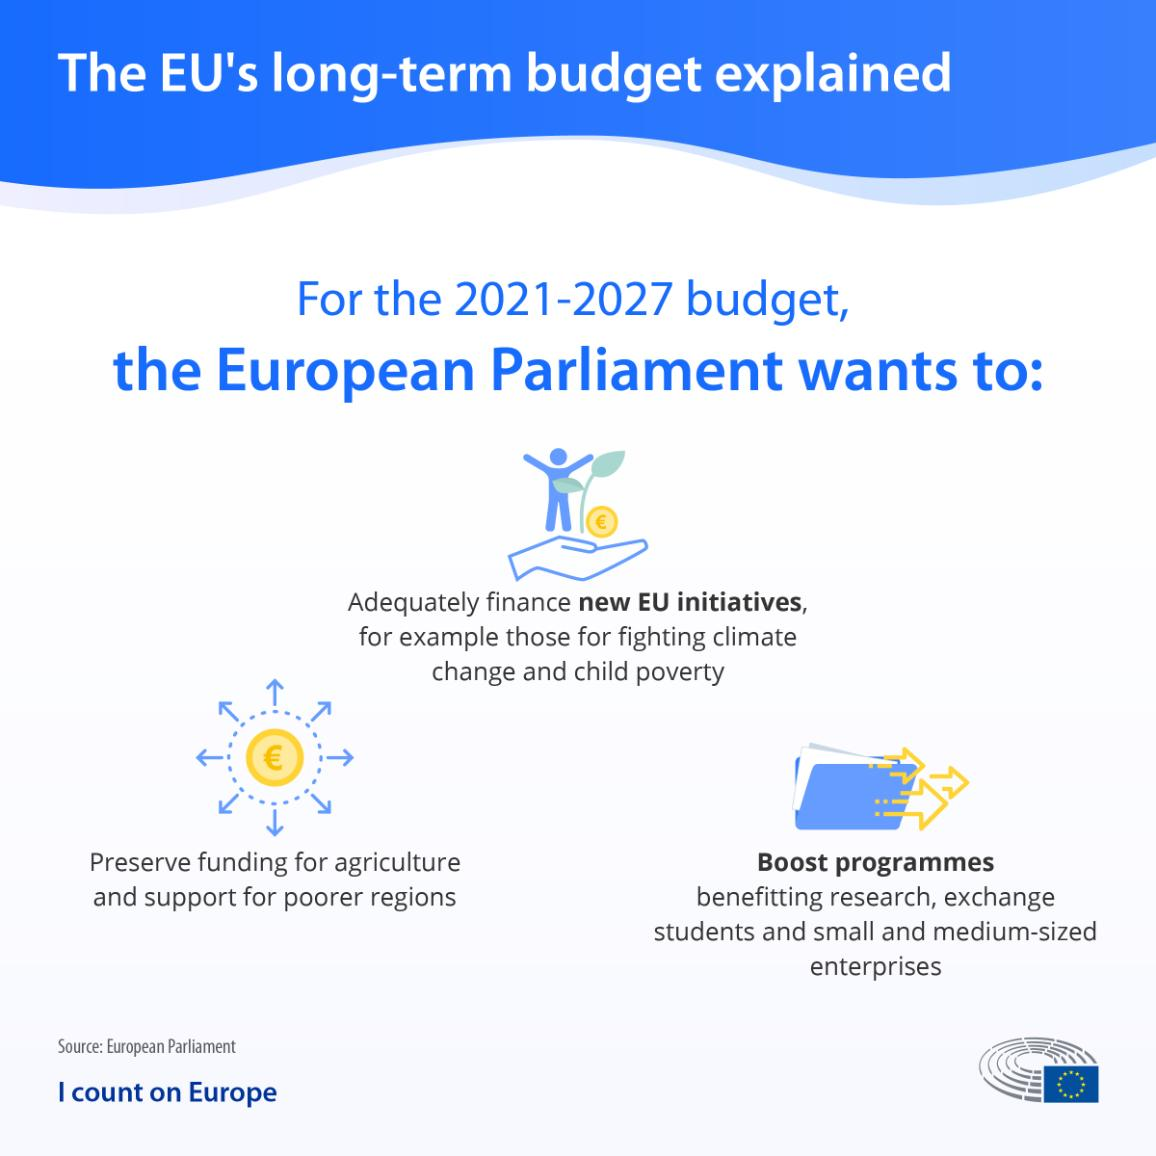 Infographic about the negotiations for the EU's long-term budget for 2021-2027 showing what the European Parliament wants